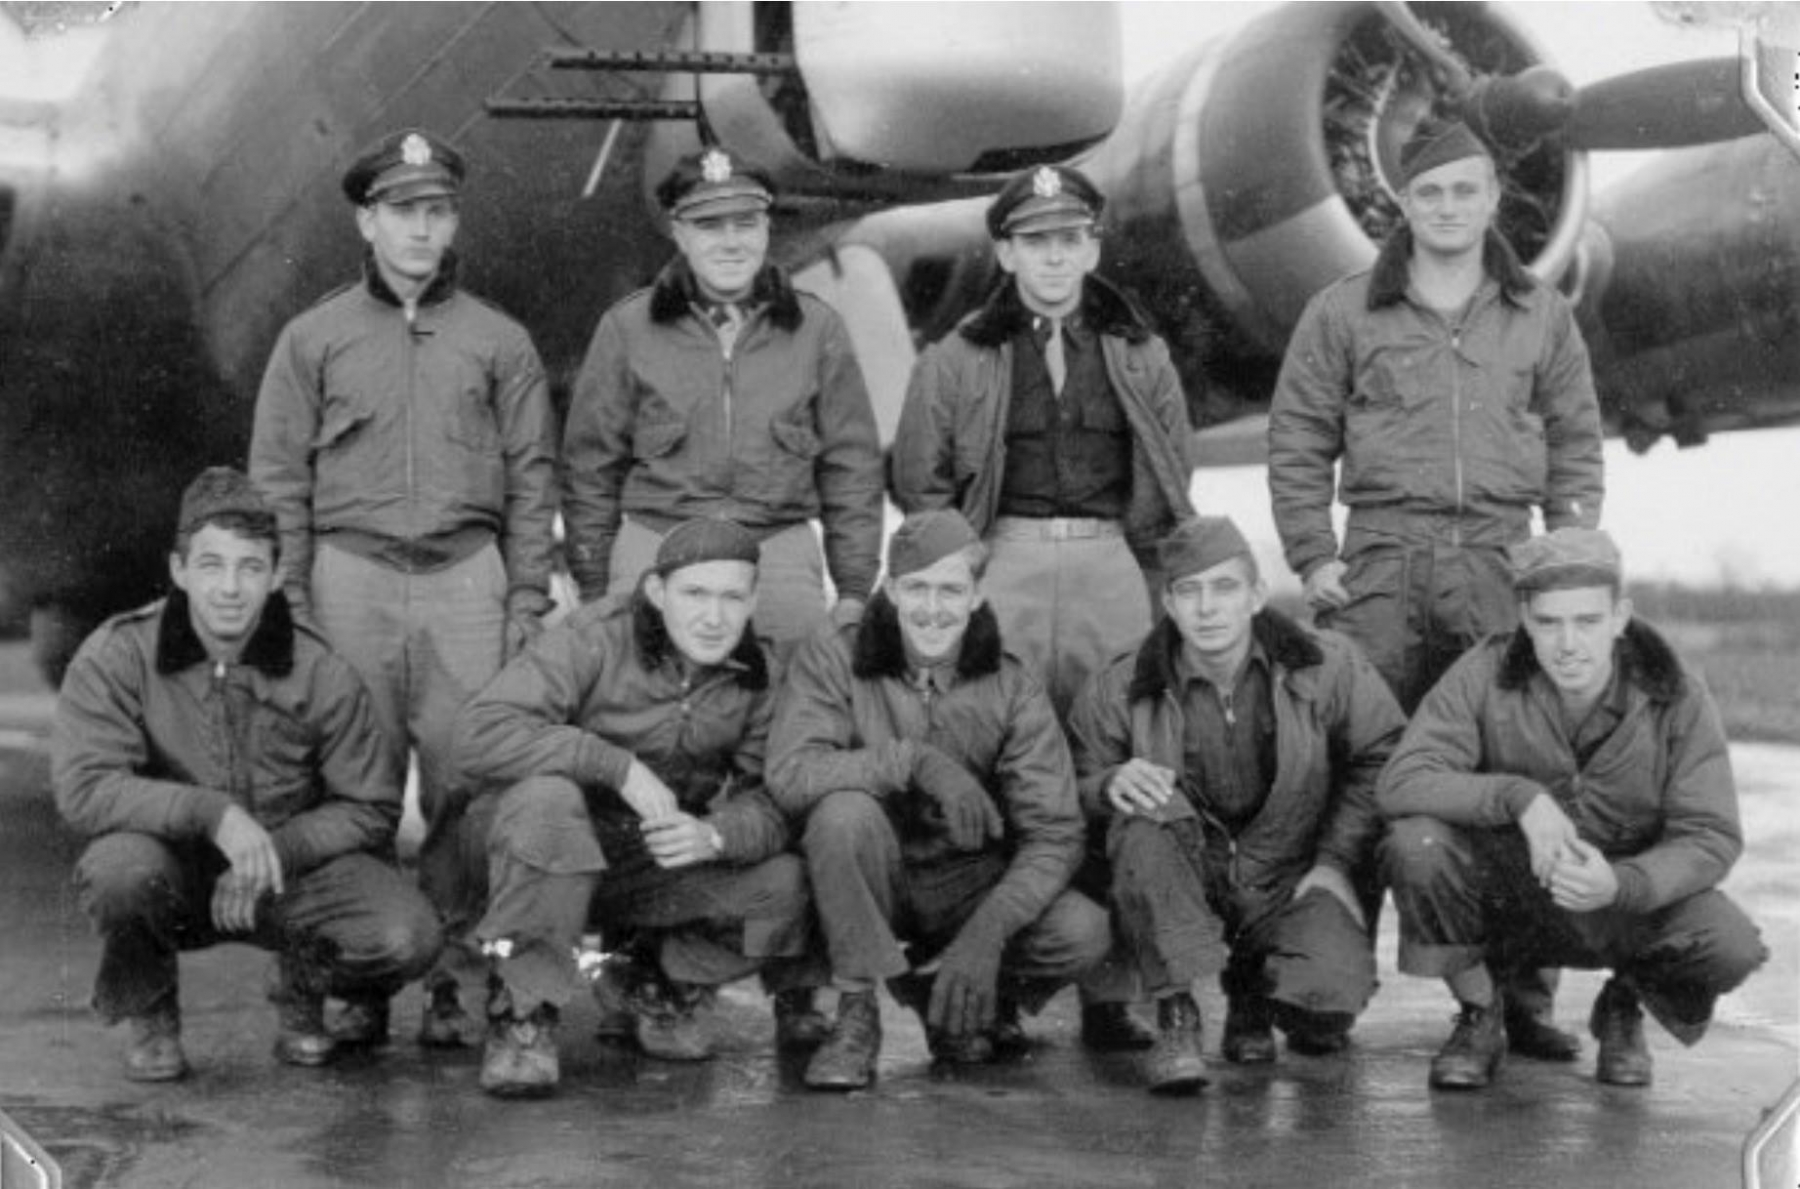 The crew of B17 44-6504 just after being assigned to 303rd Bomb Group.  Back row left to right: Fred Holcombe, James Hardy, George Kyle, Ernest Schieferstein  Front row left to right: Howard Delaney, Frank Turner, William Kaufmann, George Smith, Joel Berly